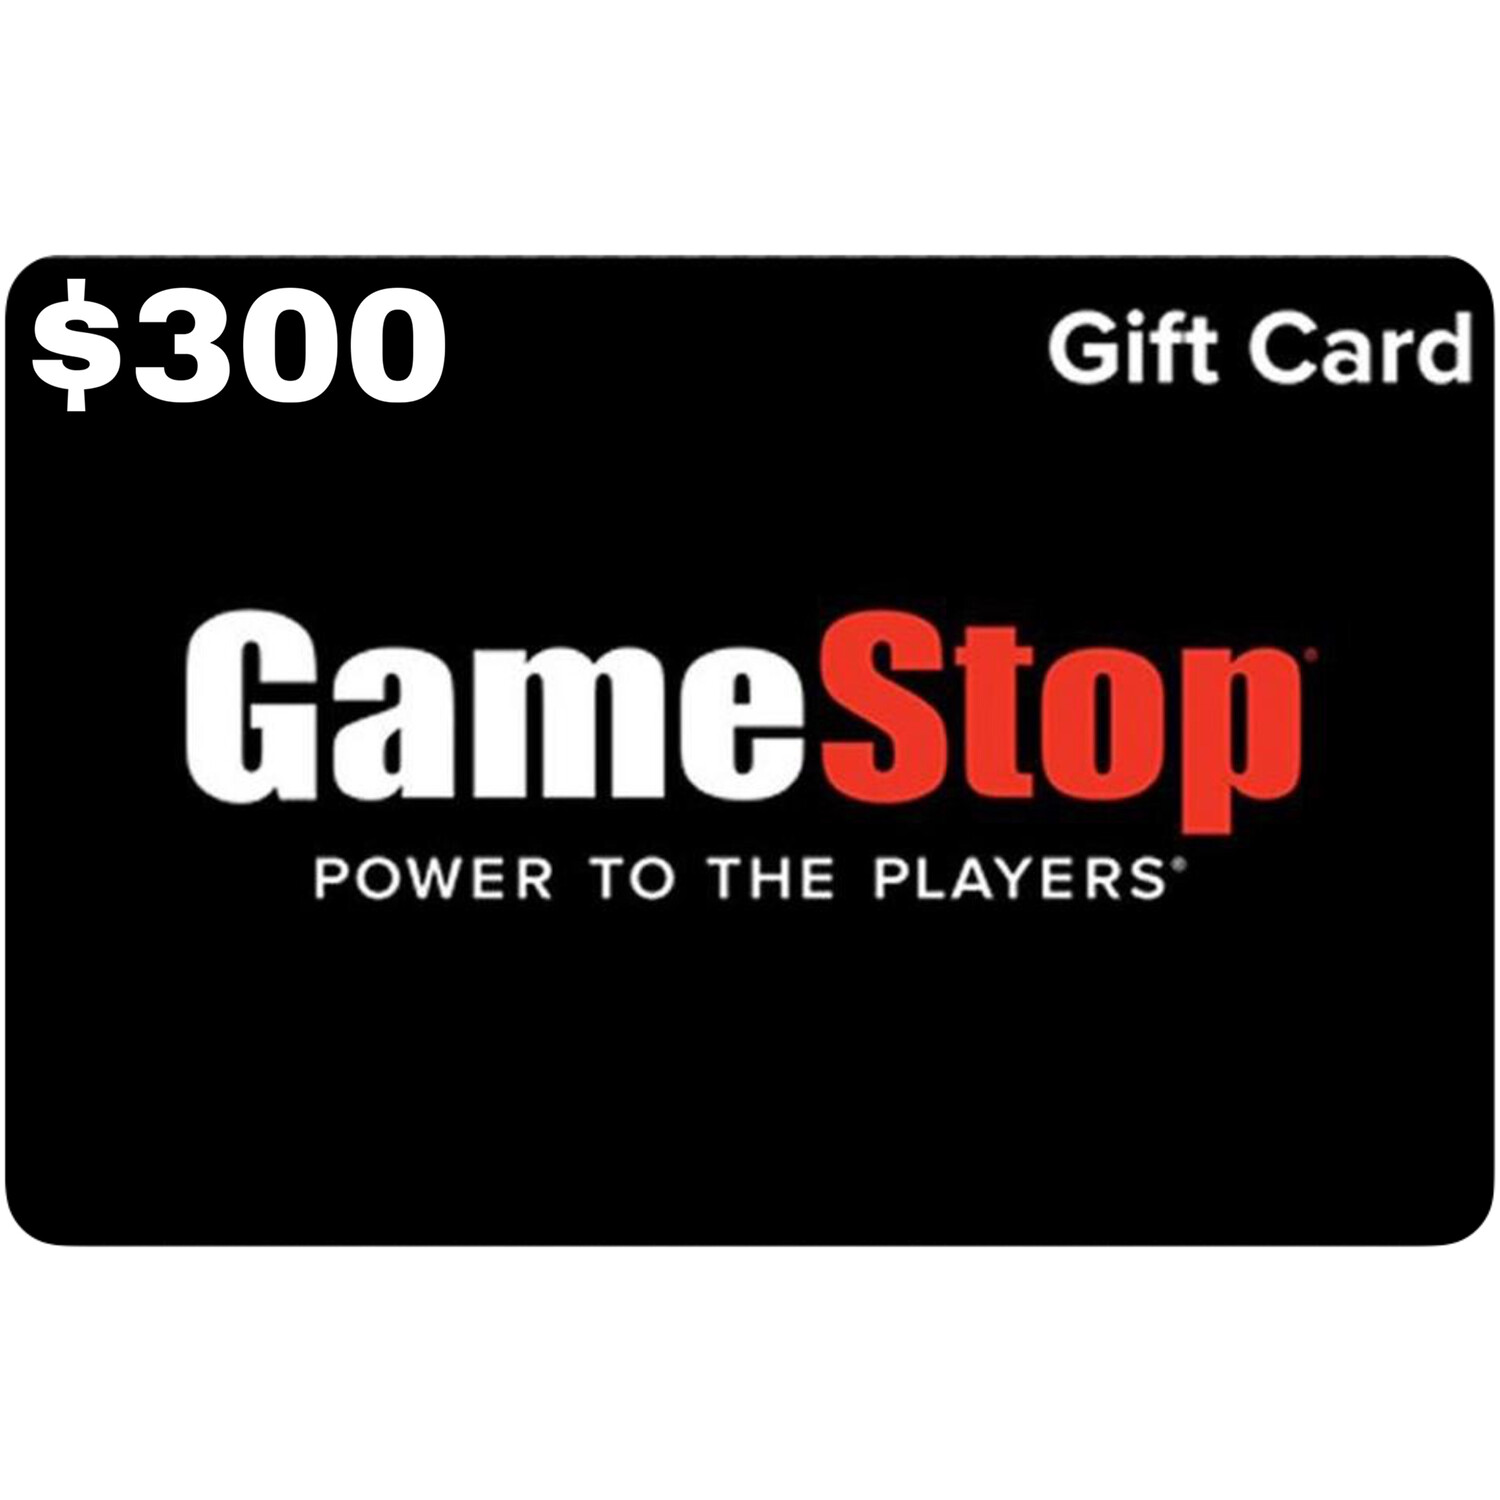 Gamestop Gift Card $300